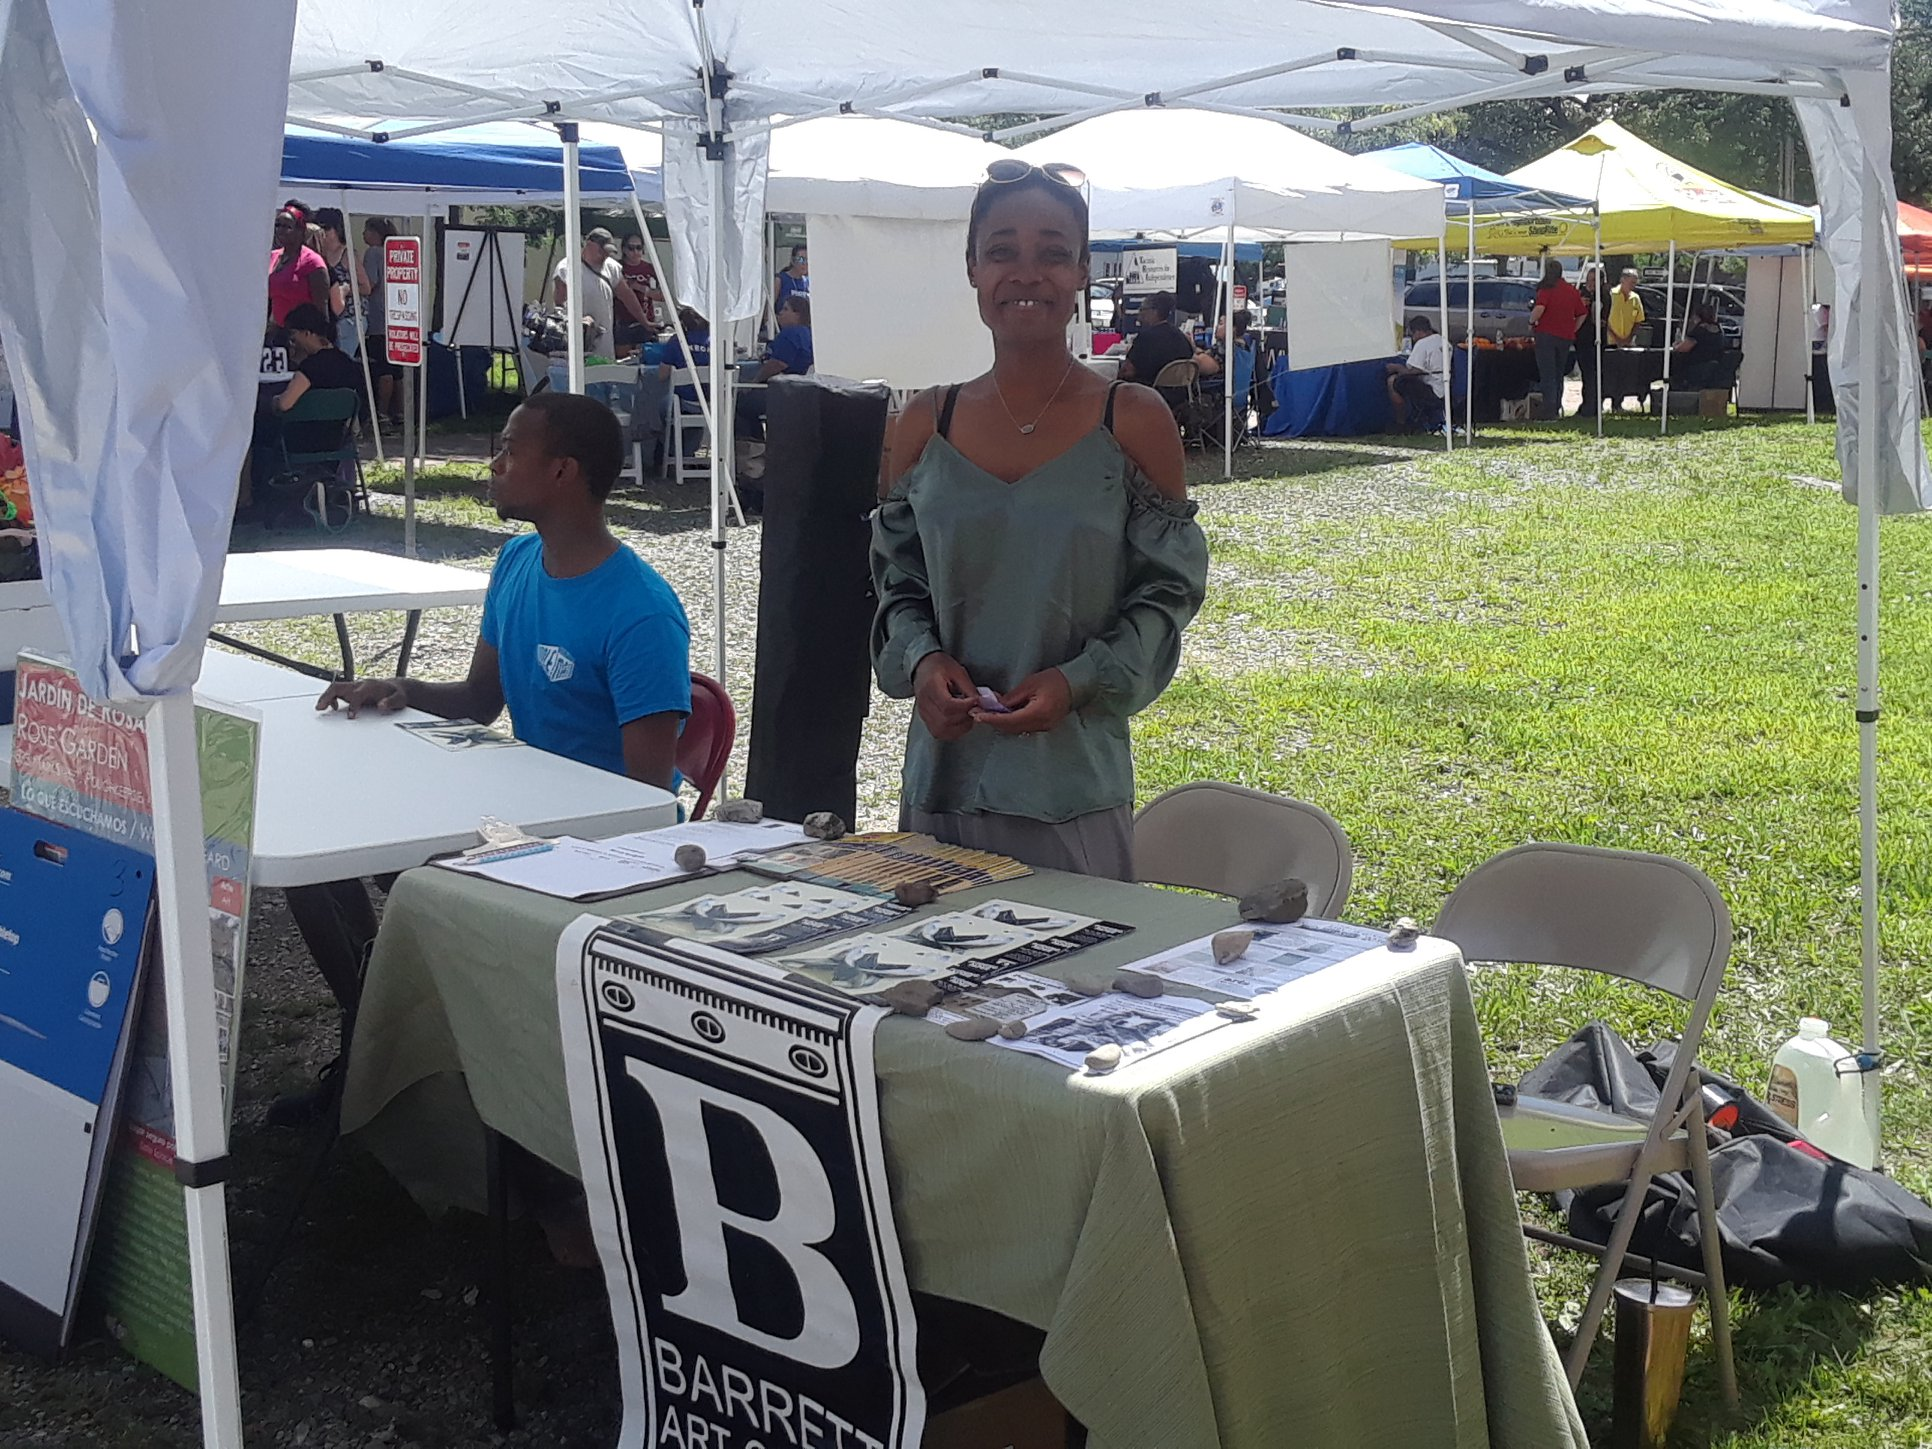 Summer 2018 Intern, Sekaya, connecting with the community at the O+ Festival.